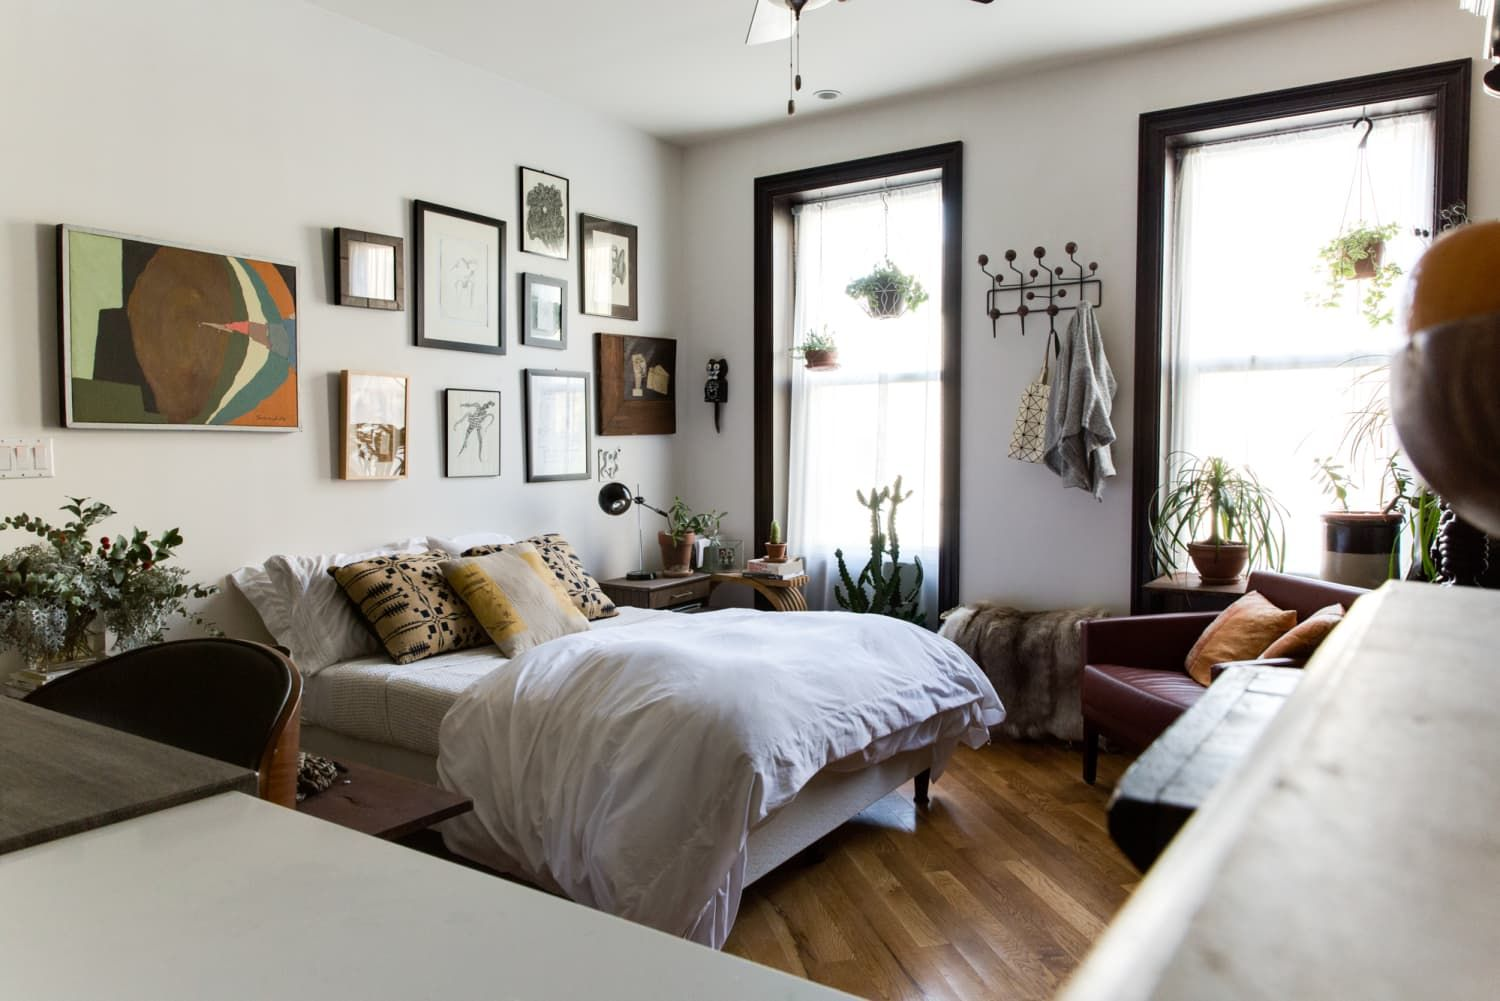 Browse Photos   Apartment Therapy   Decorating small ...